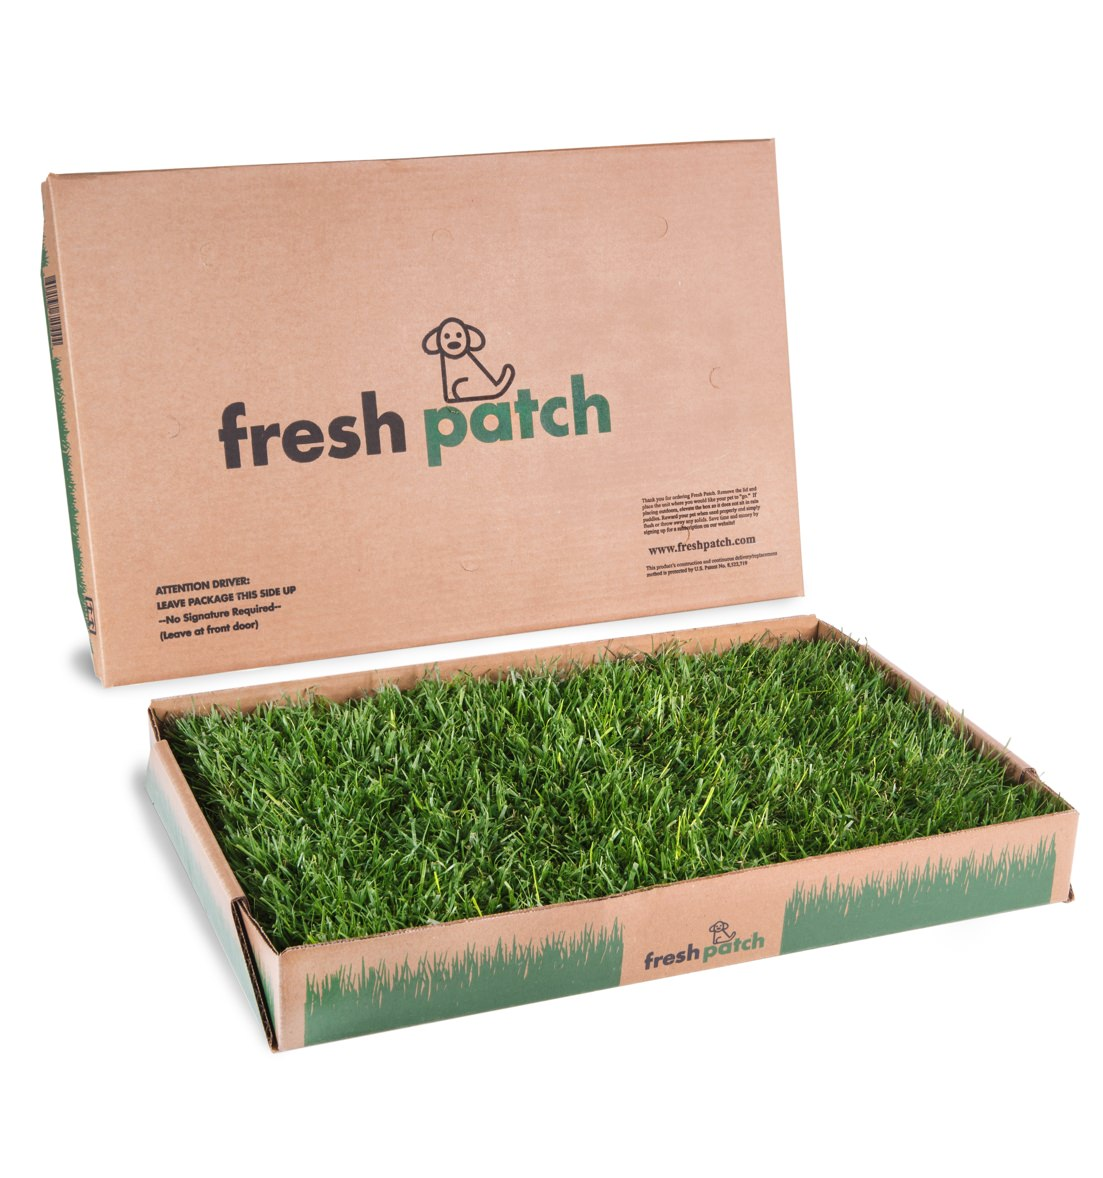 Fresh Patch Real Grass Disposable Potty Patch